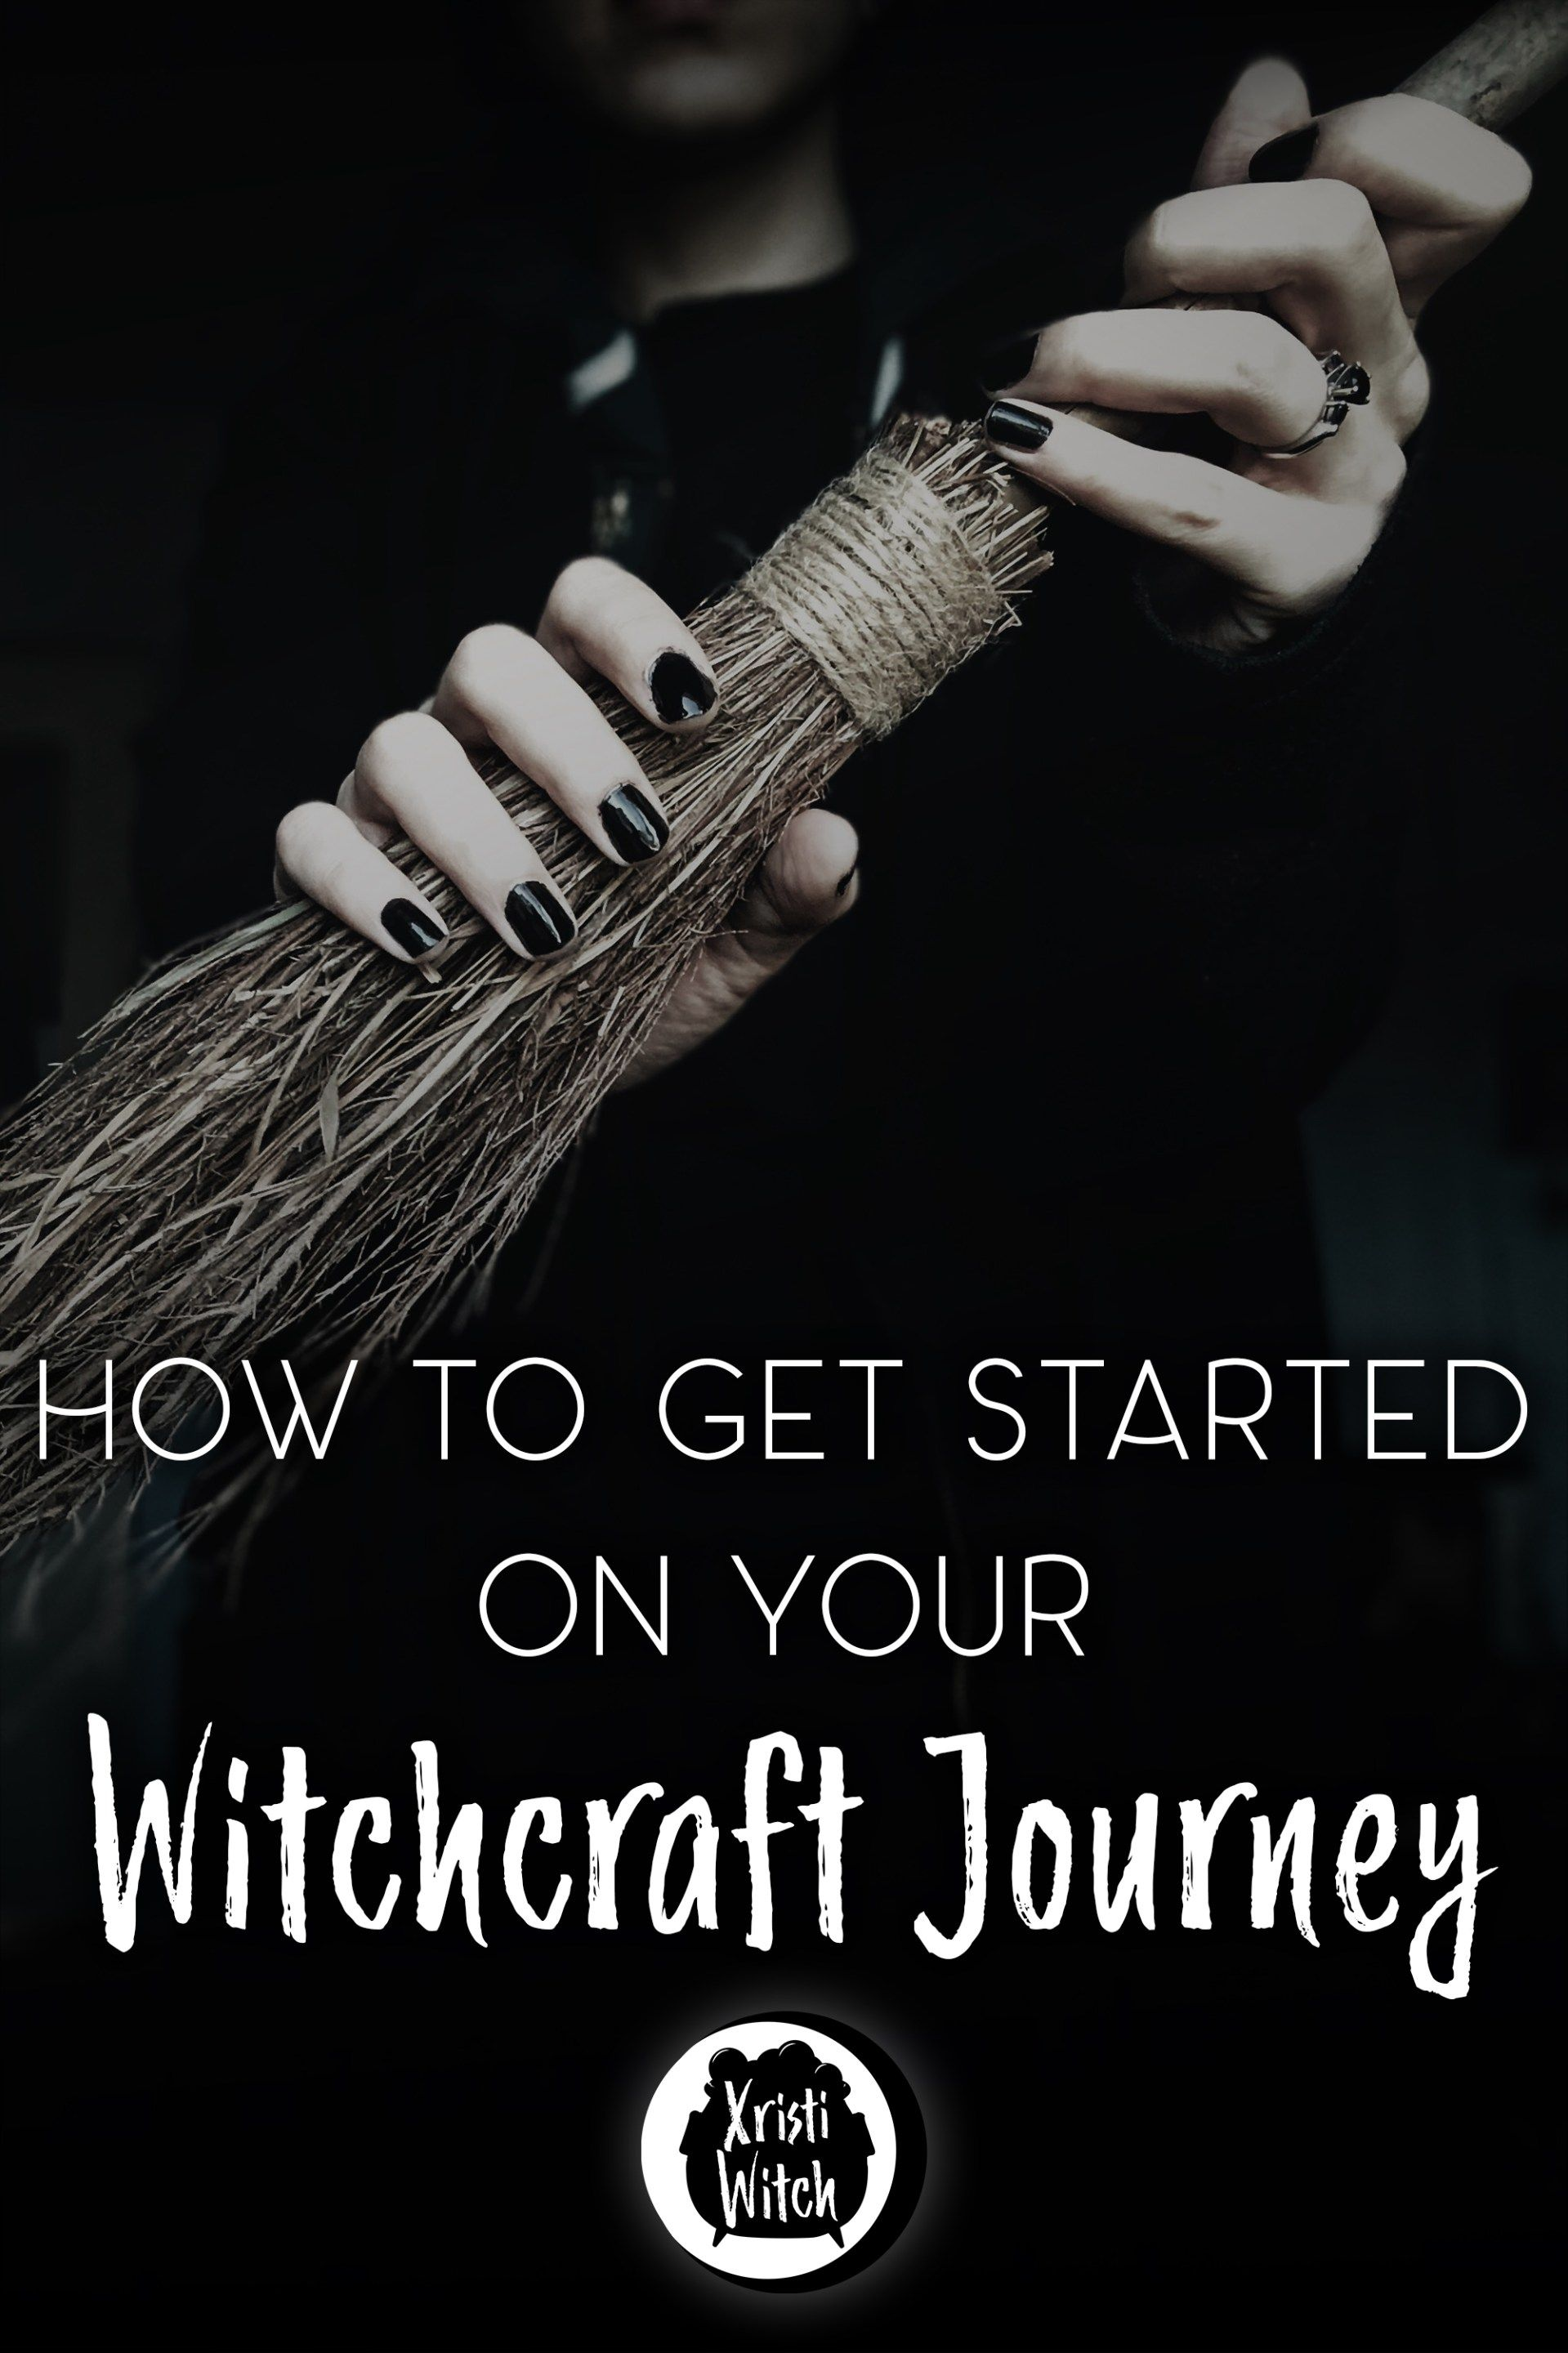 How To Get Started On Your Witchcraft Journey With Images